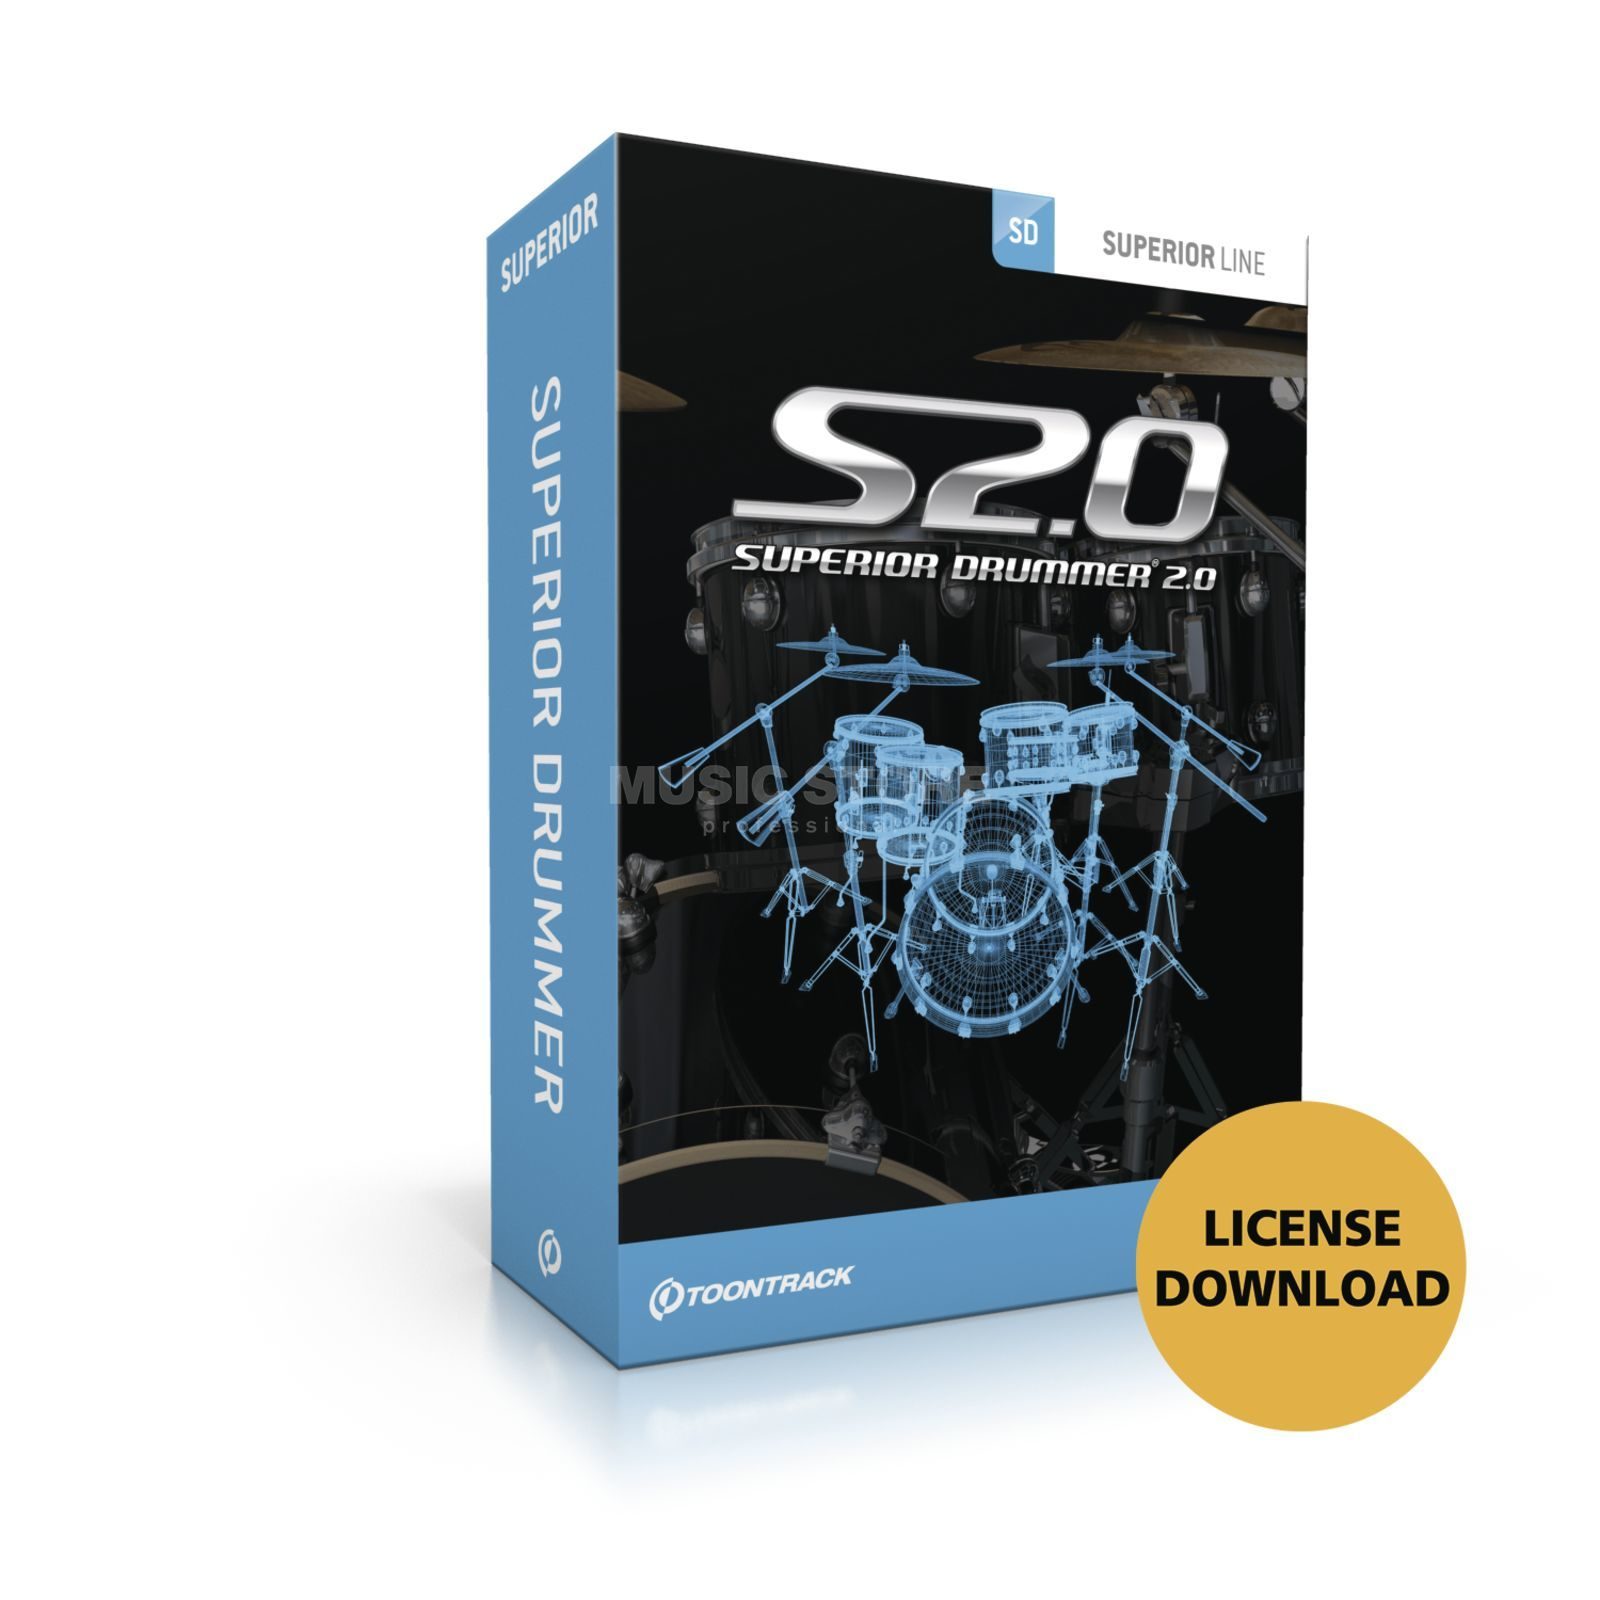 Toontrack Superior Drummer 2.0 CG License Code Product Image